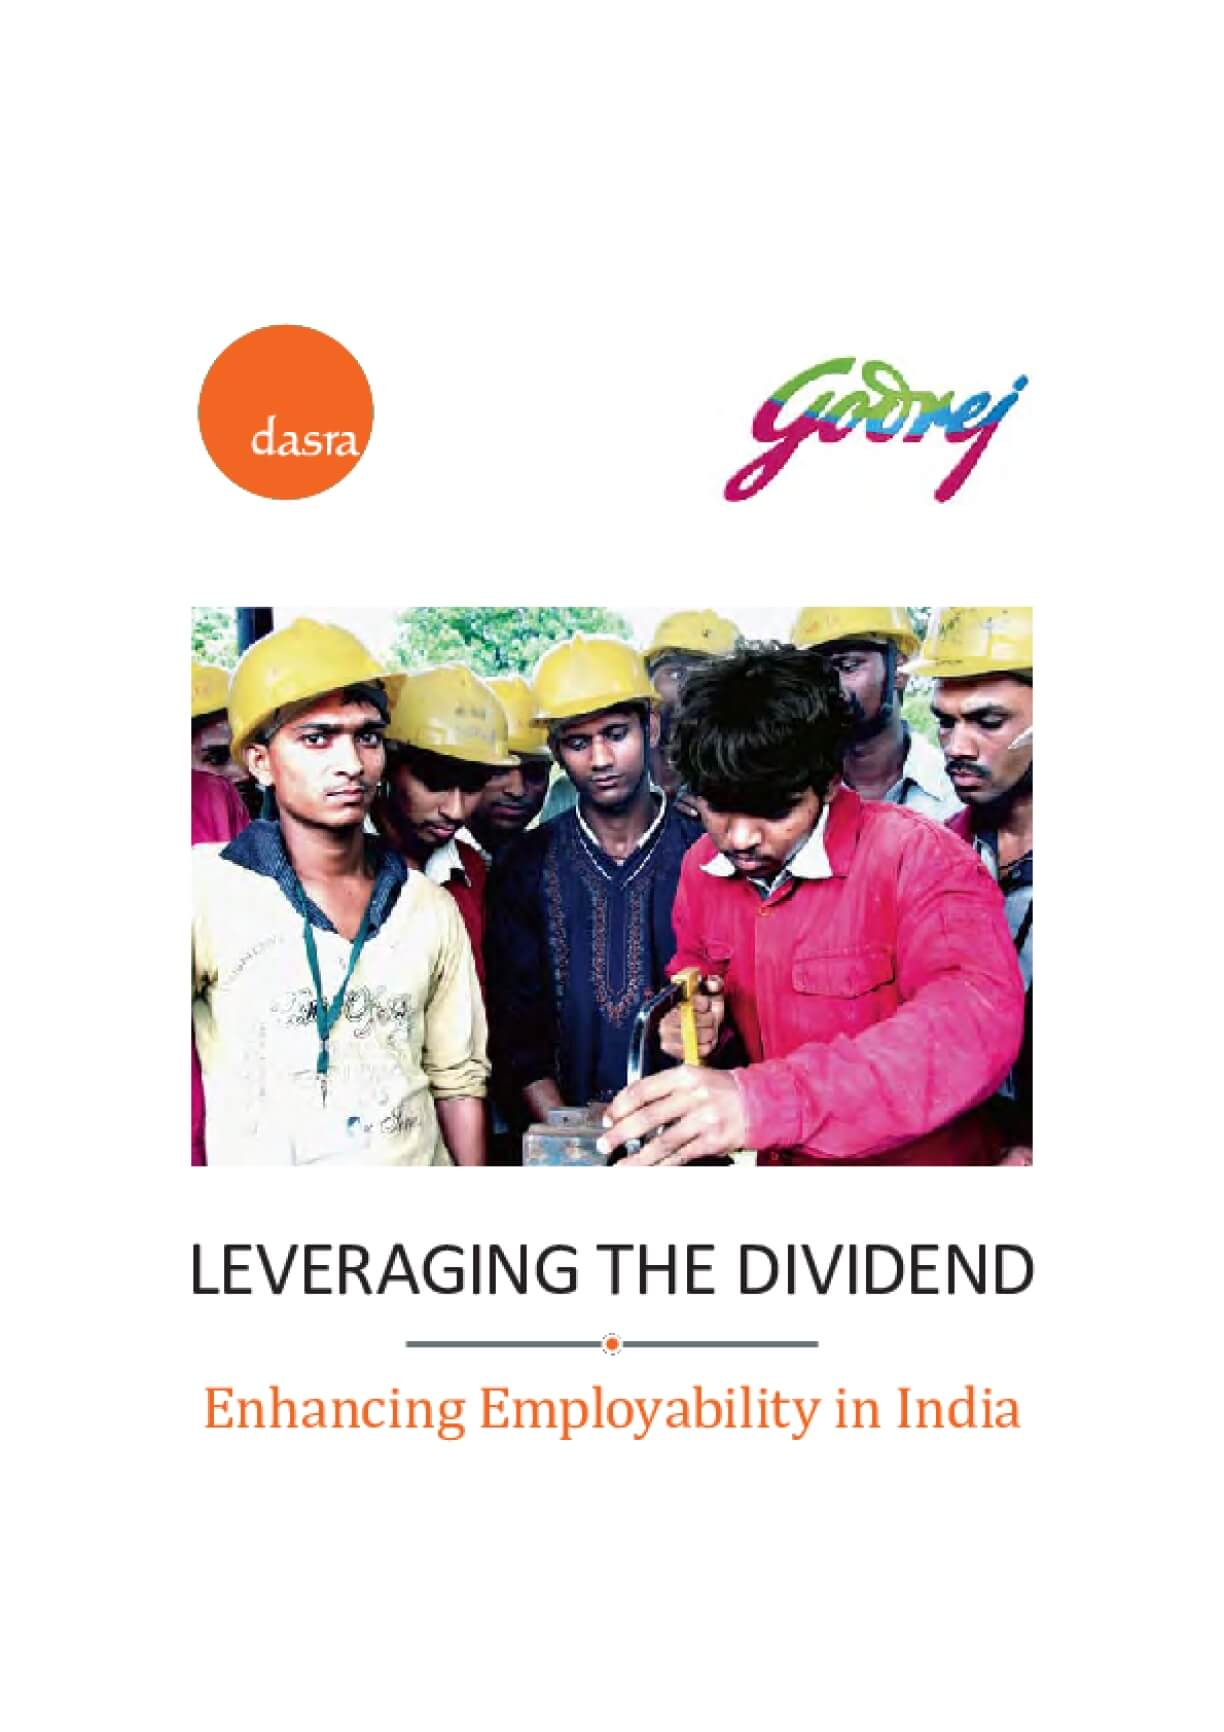 Leveraging the Dividend: Enhancing Employability in India